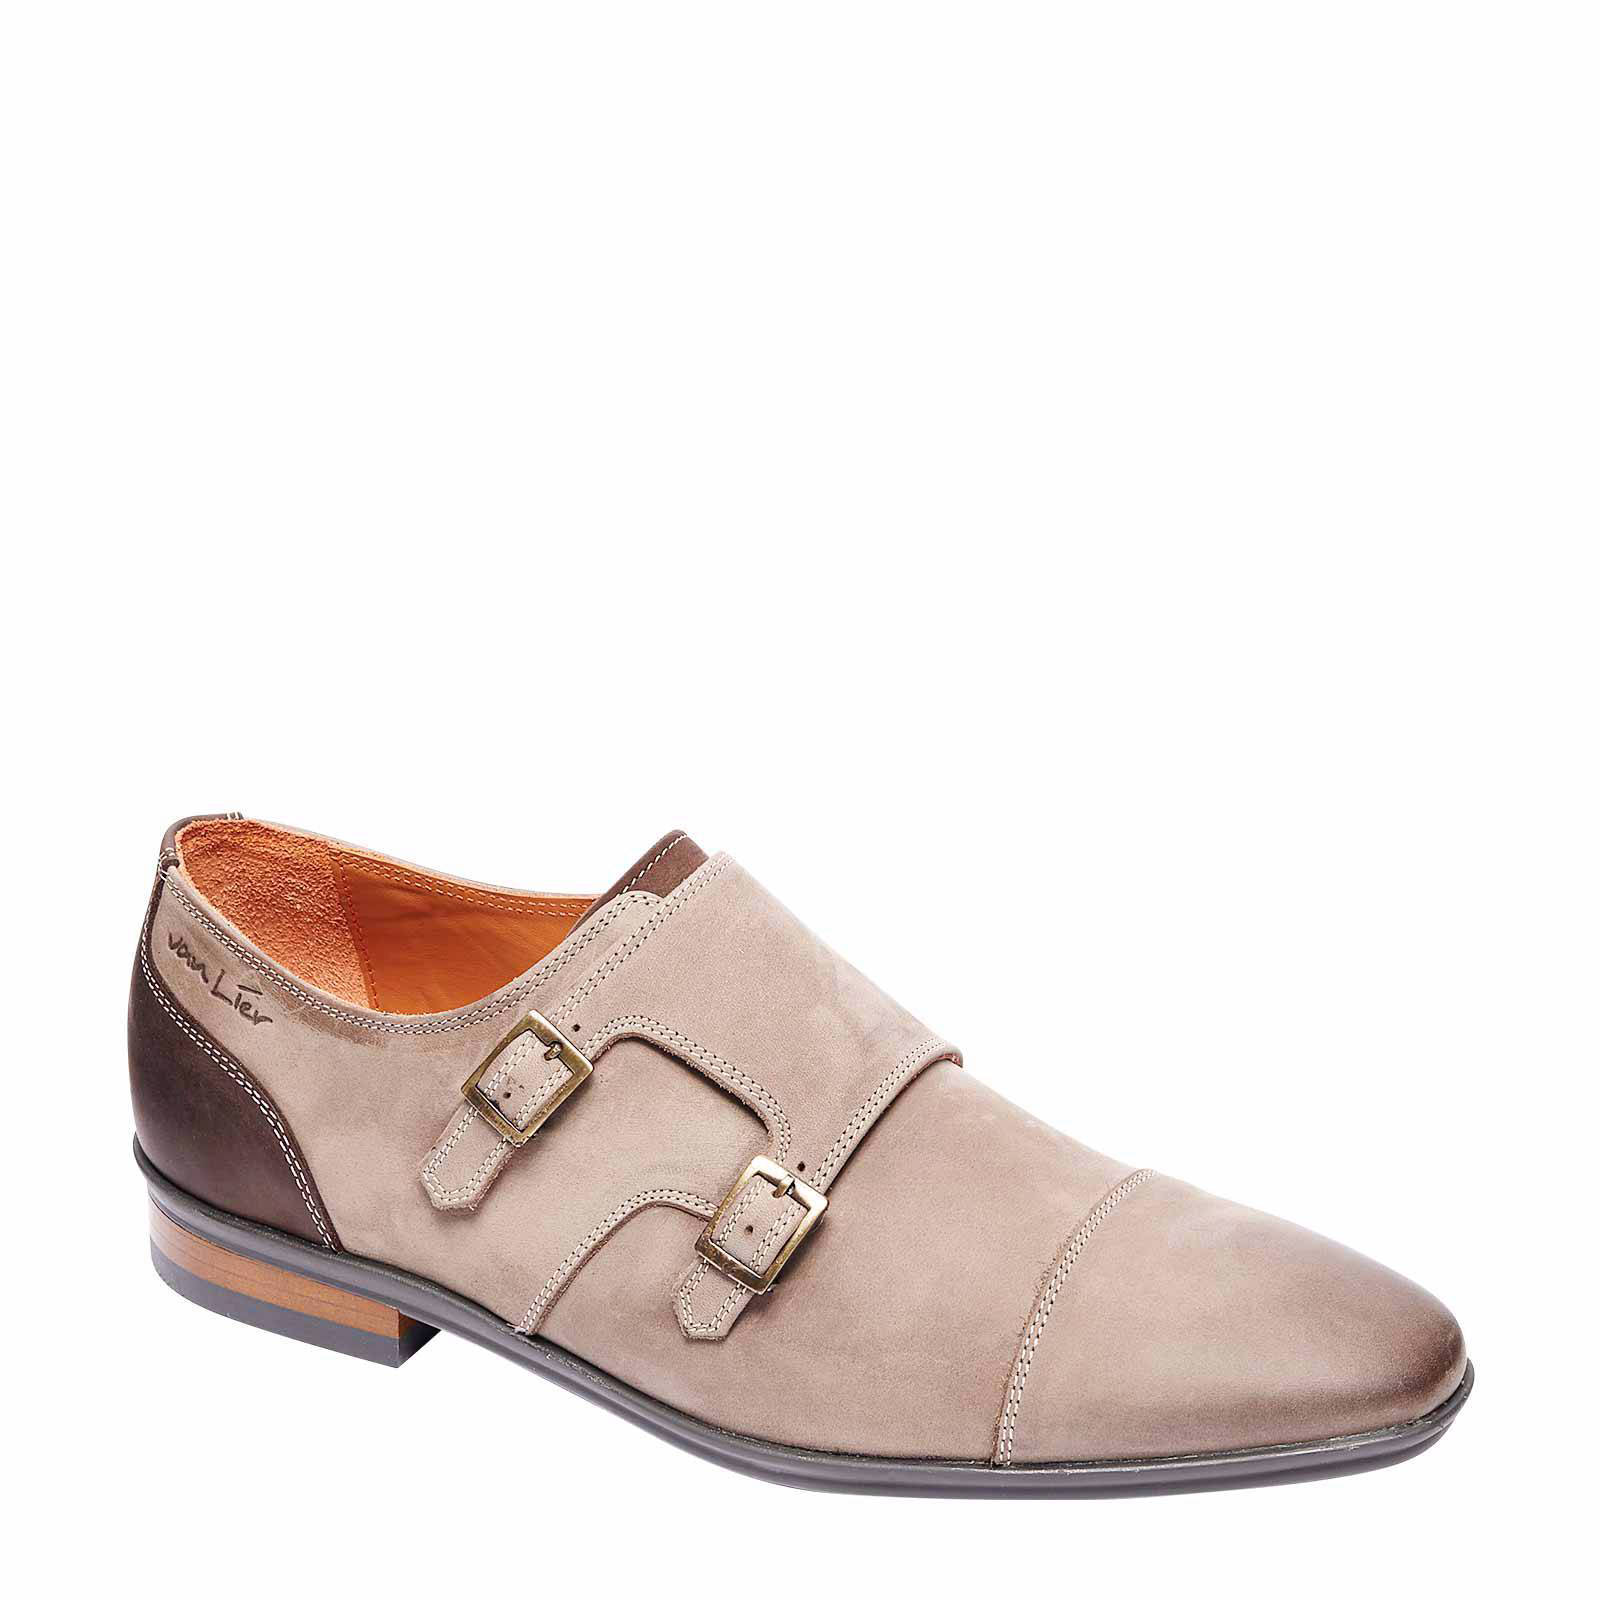 Chaussures Hommes Boucle De Treuil Taupe jcVJgGX